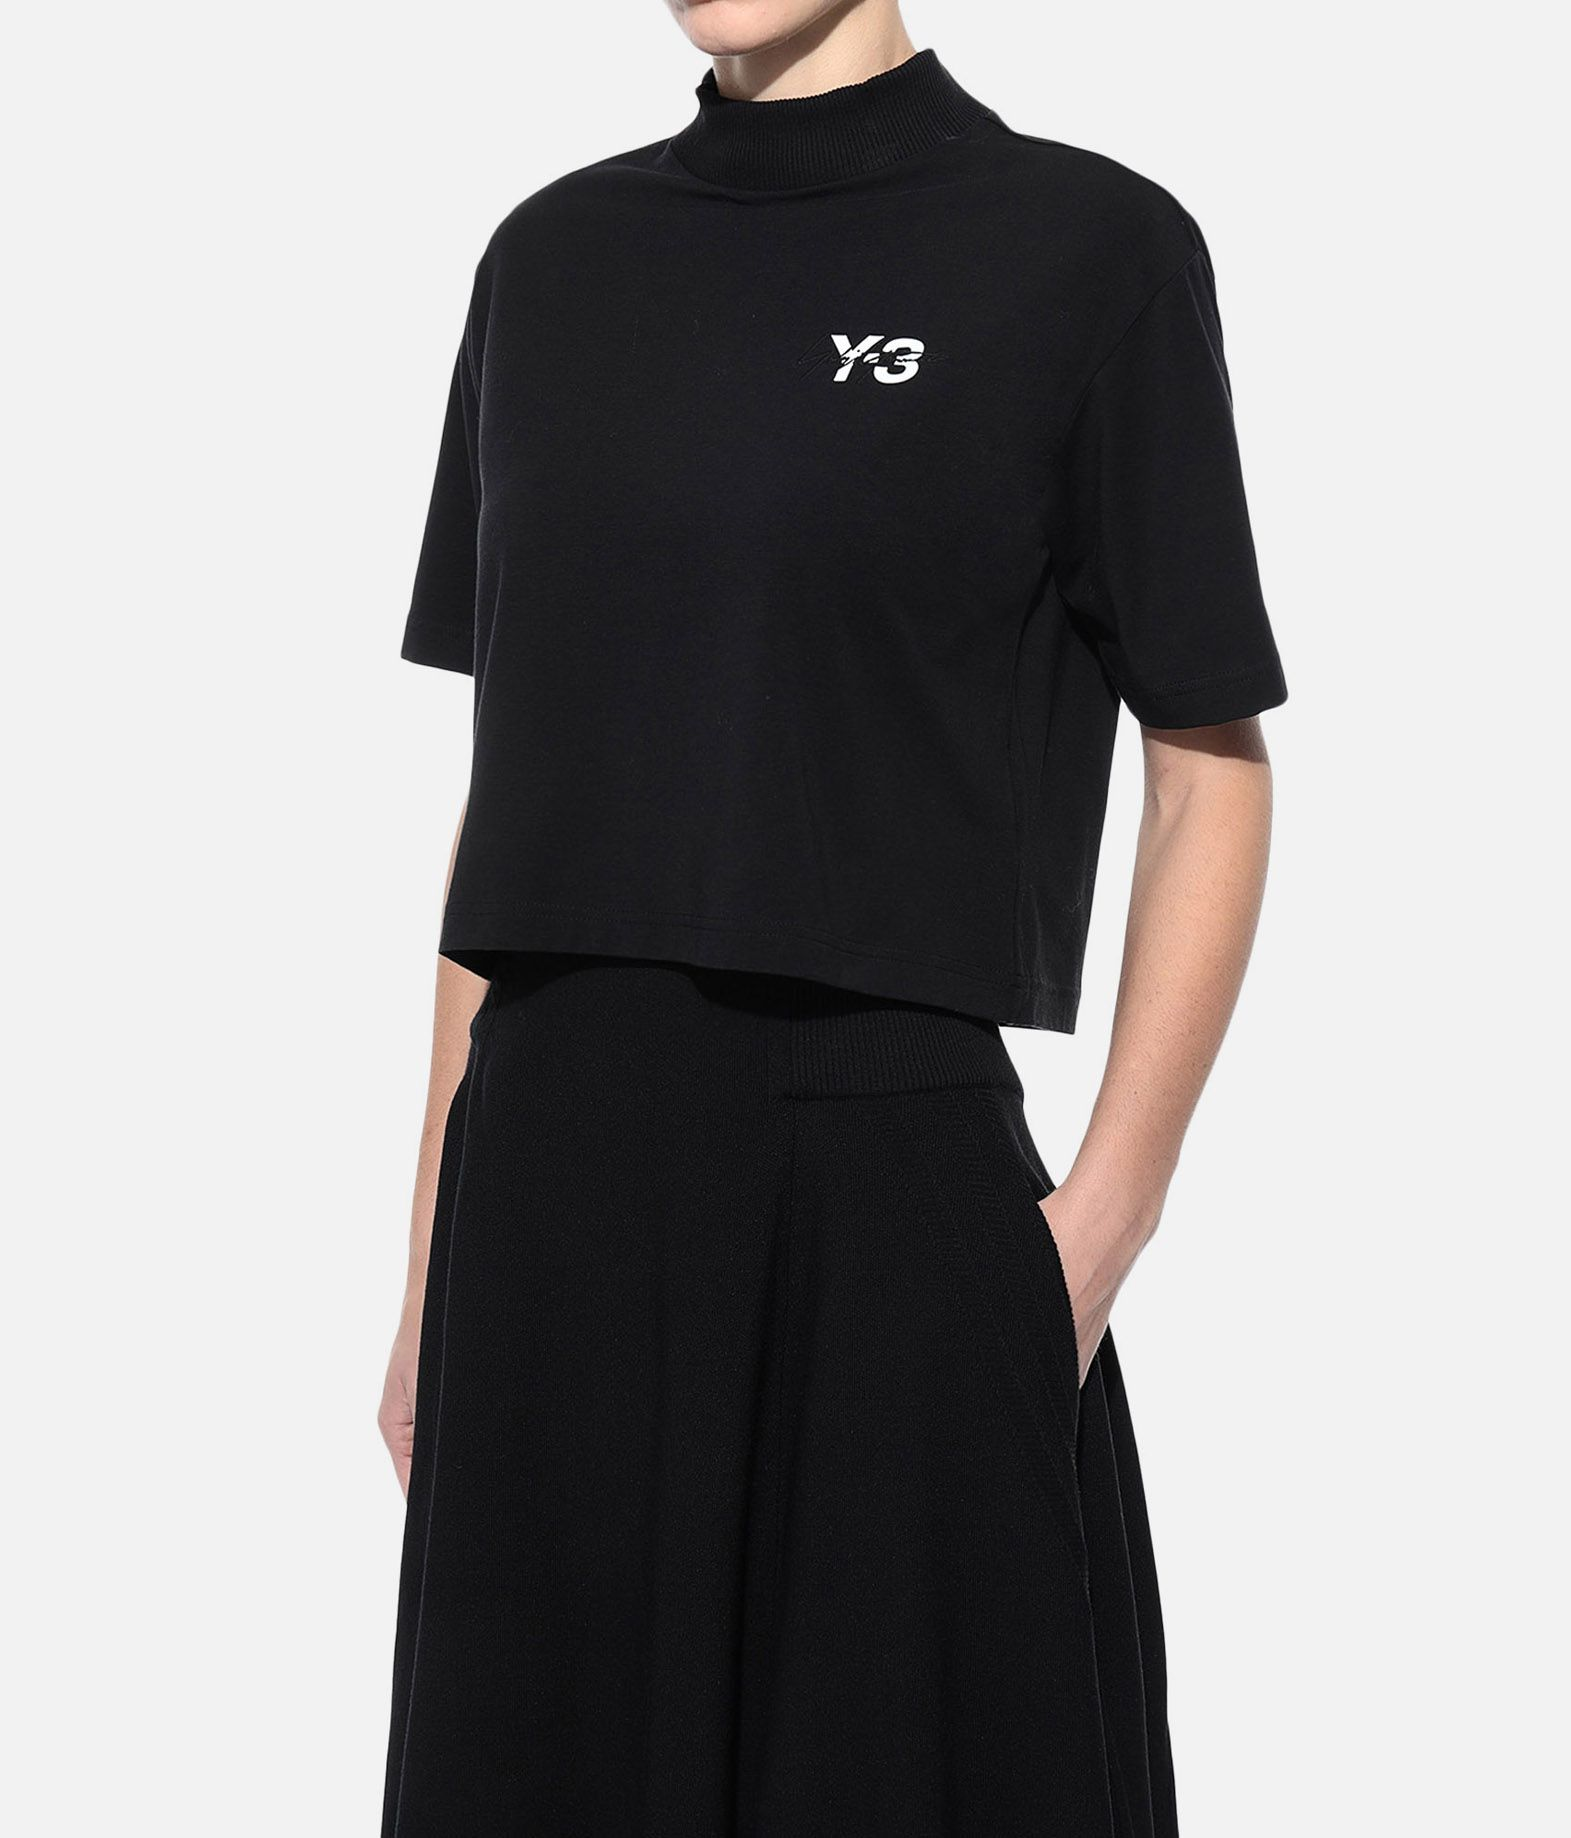 Y-3 Y-3 SIGNATURE CROP TEE Short sleeve t-shirt Woman e